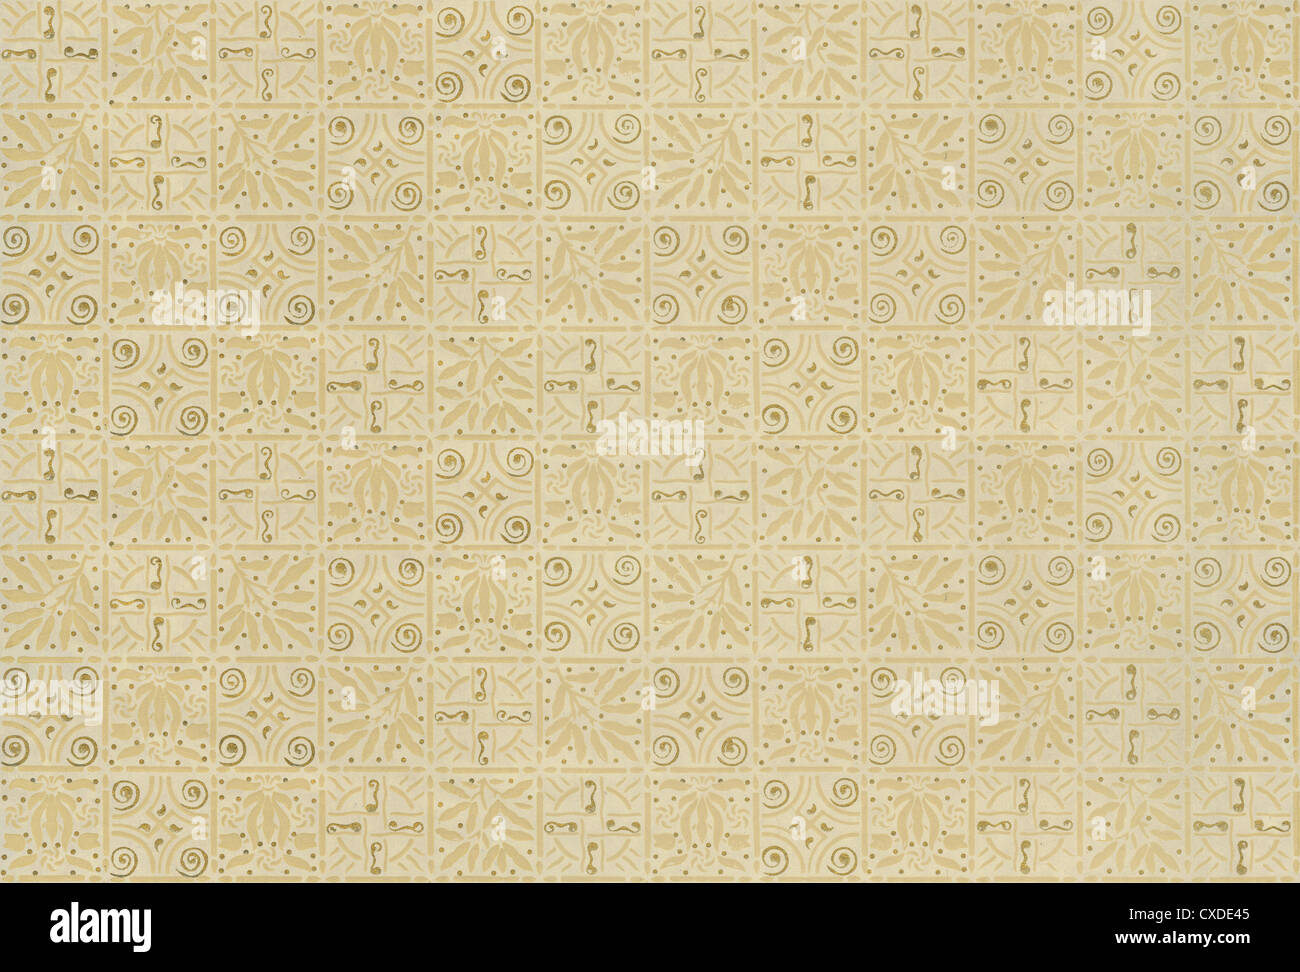 Circa 1880s Victorian wallpaper. This authentic fragment can be repeated or tiled. - Stock Image